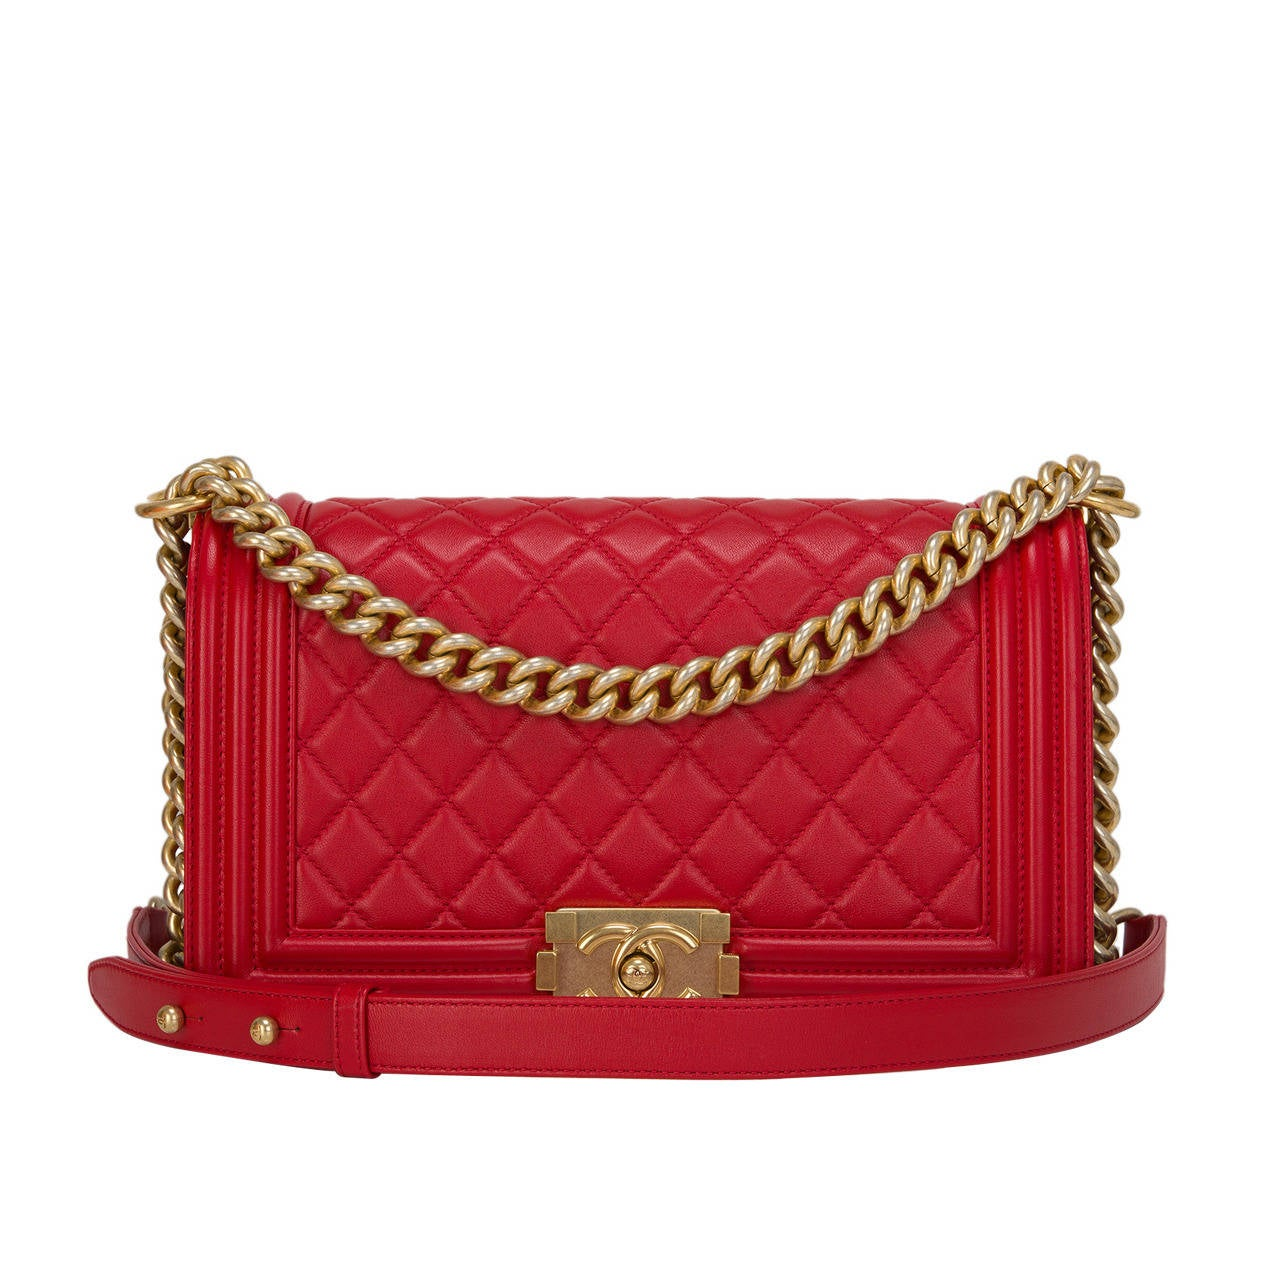 Chanel Red Quilted Lambskin Medium Boy Bag For Sale